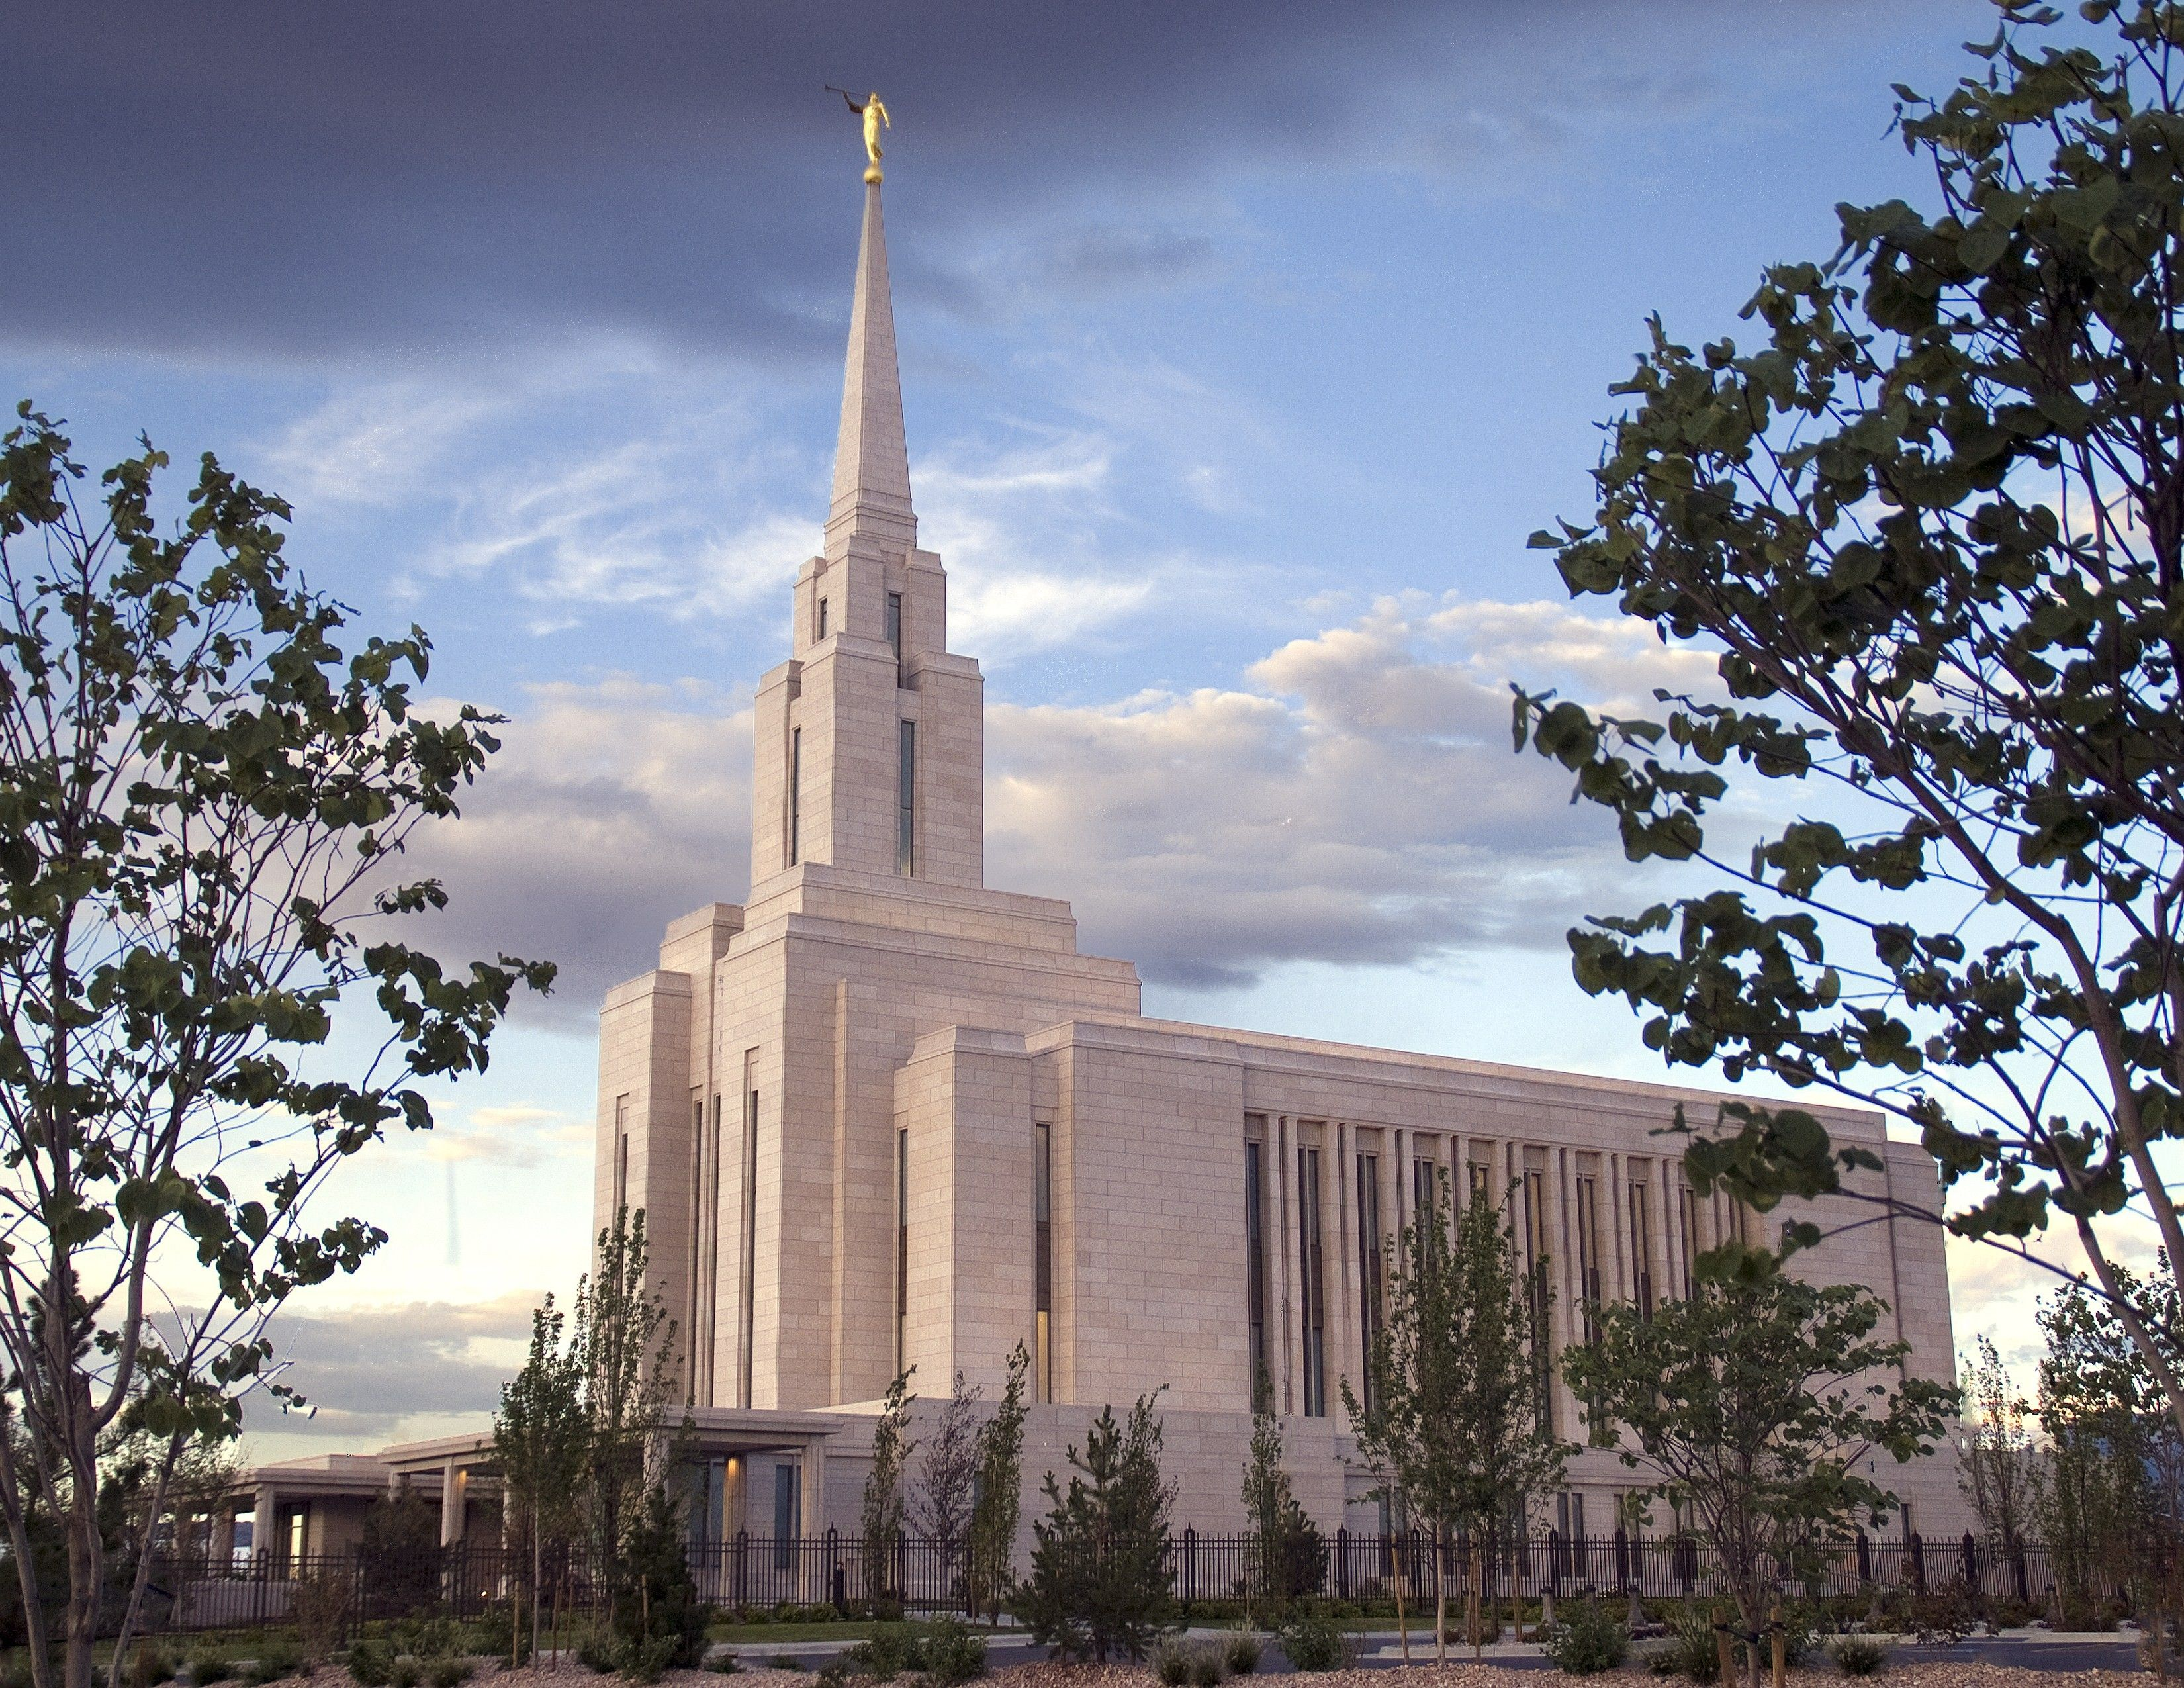 The Oquirrh Mountain Utah Temple side view at sunset, including the entrance and scenery.